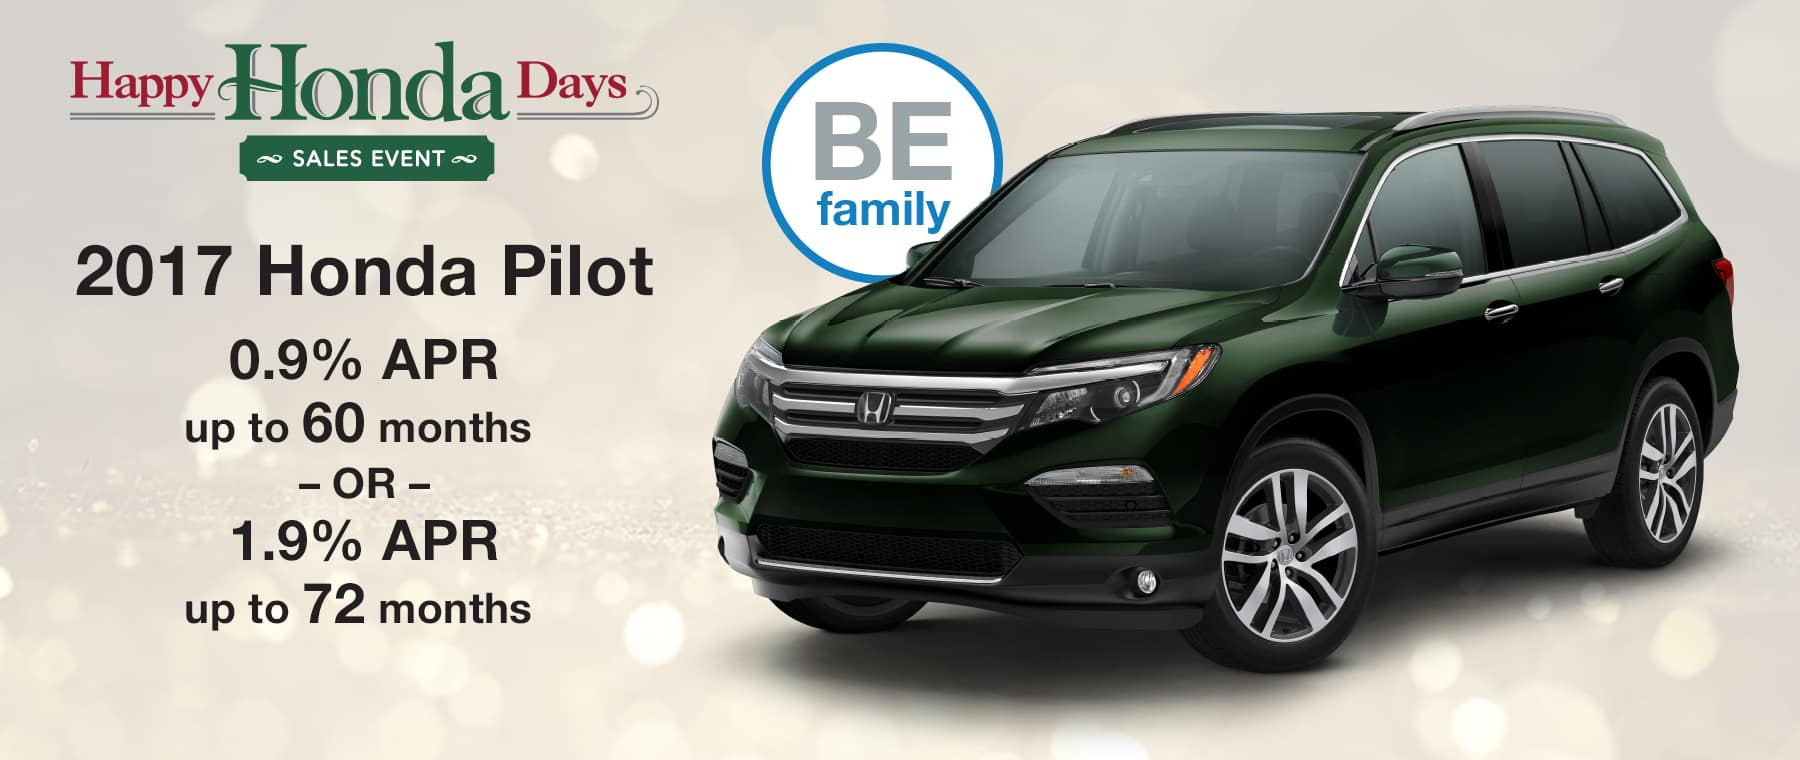 Finance a new 2017 Honda Pilot with 0.9% APR up to 60 months